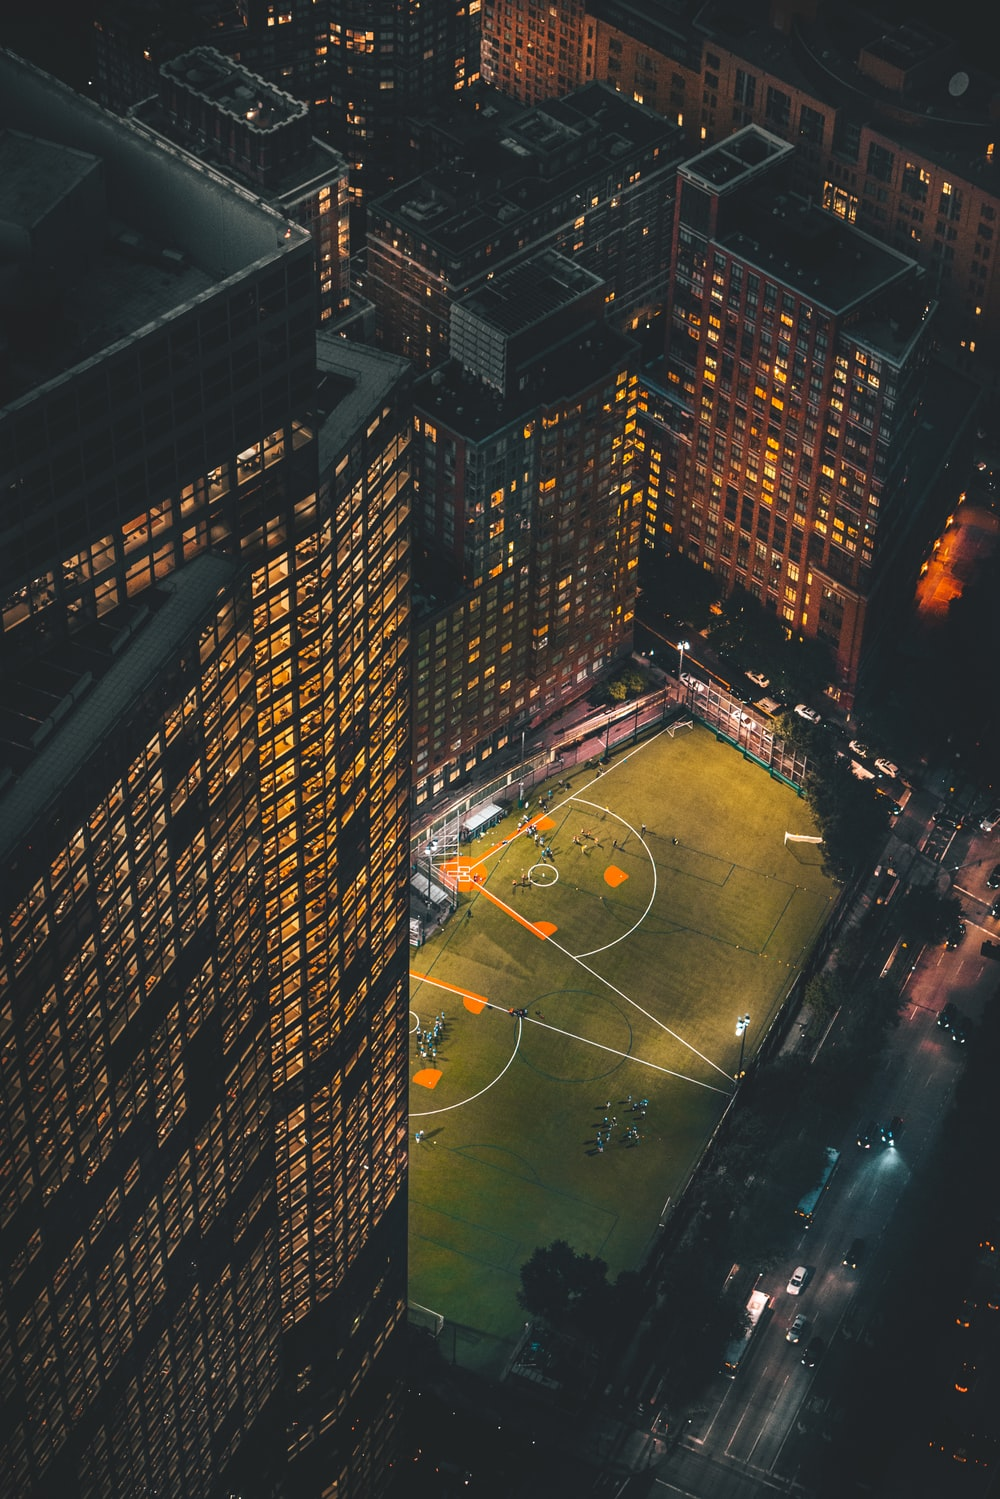 aerial view of basketball court during night time